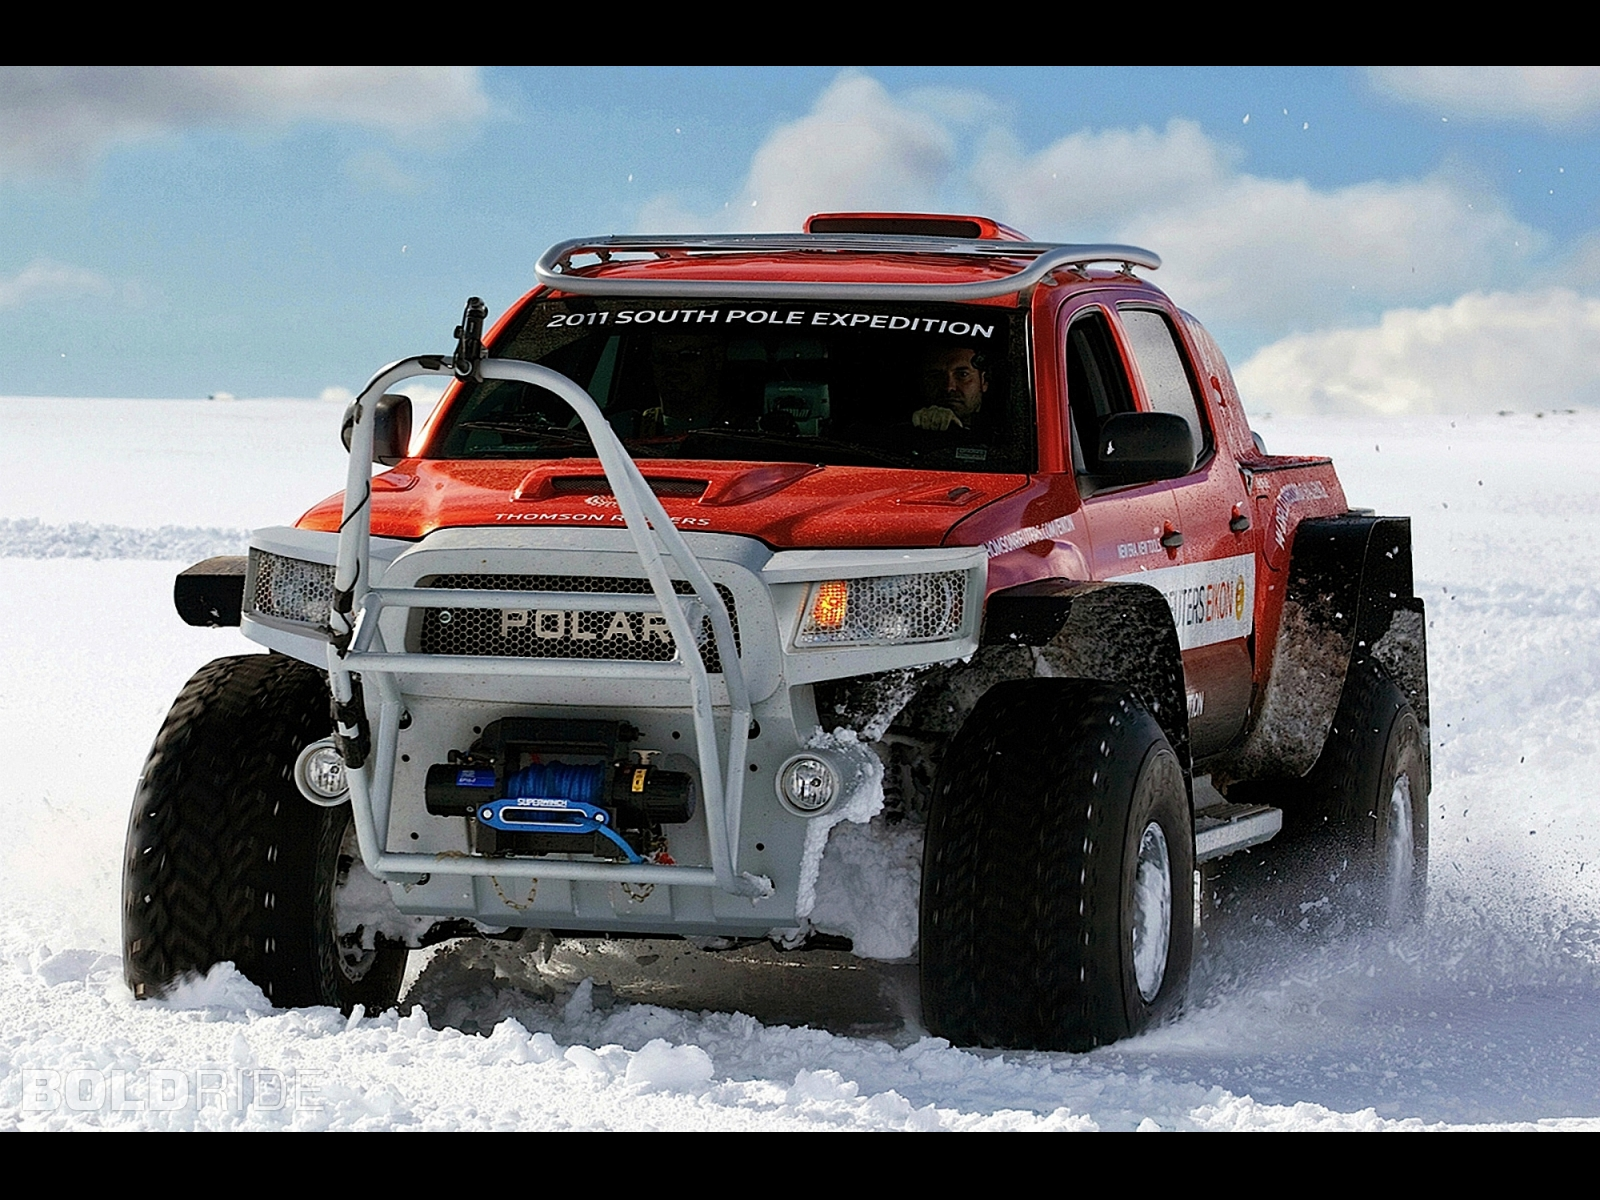 2011 South Pole Expedition Concept Vehicle Offroad 4x4